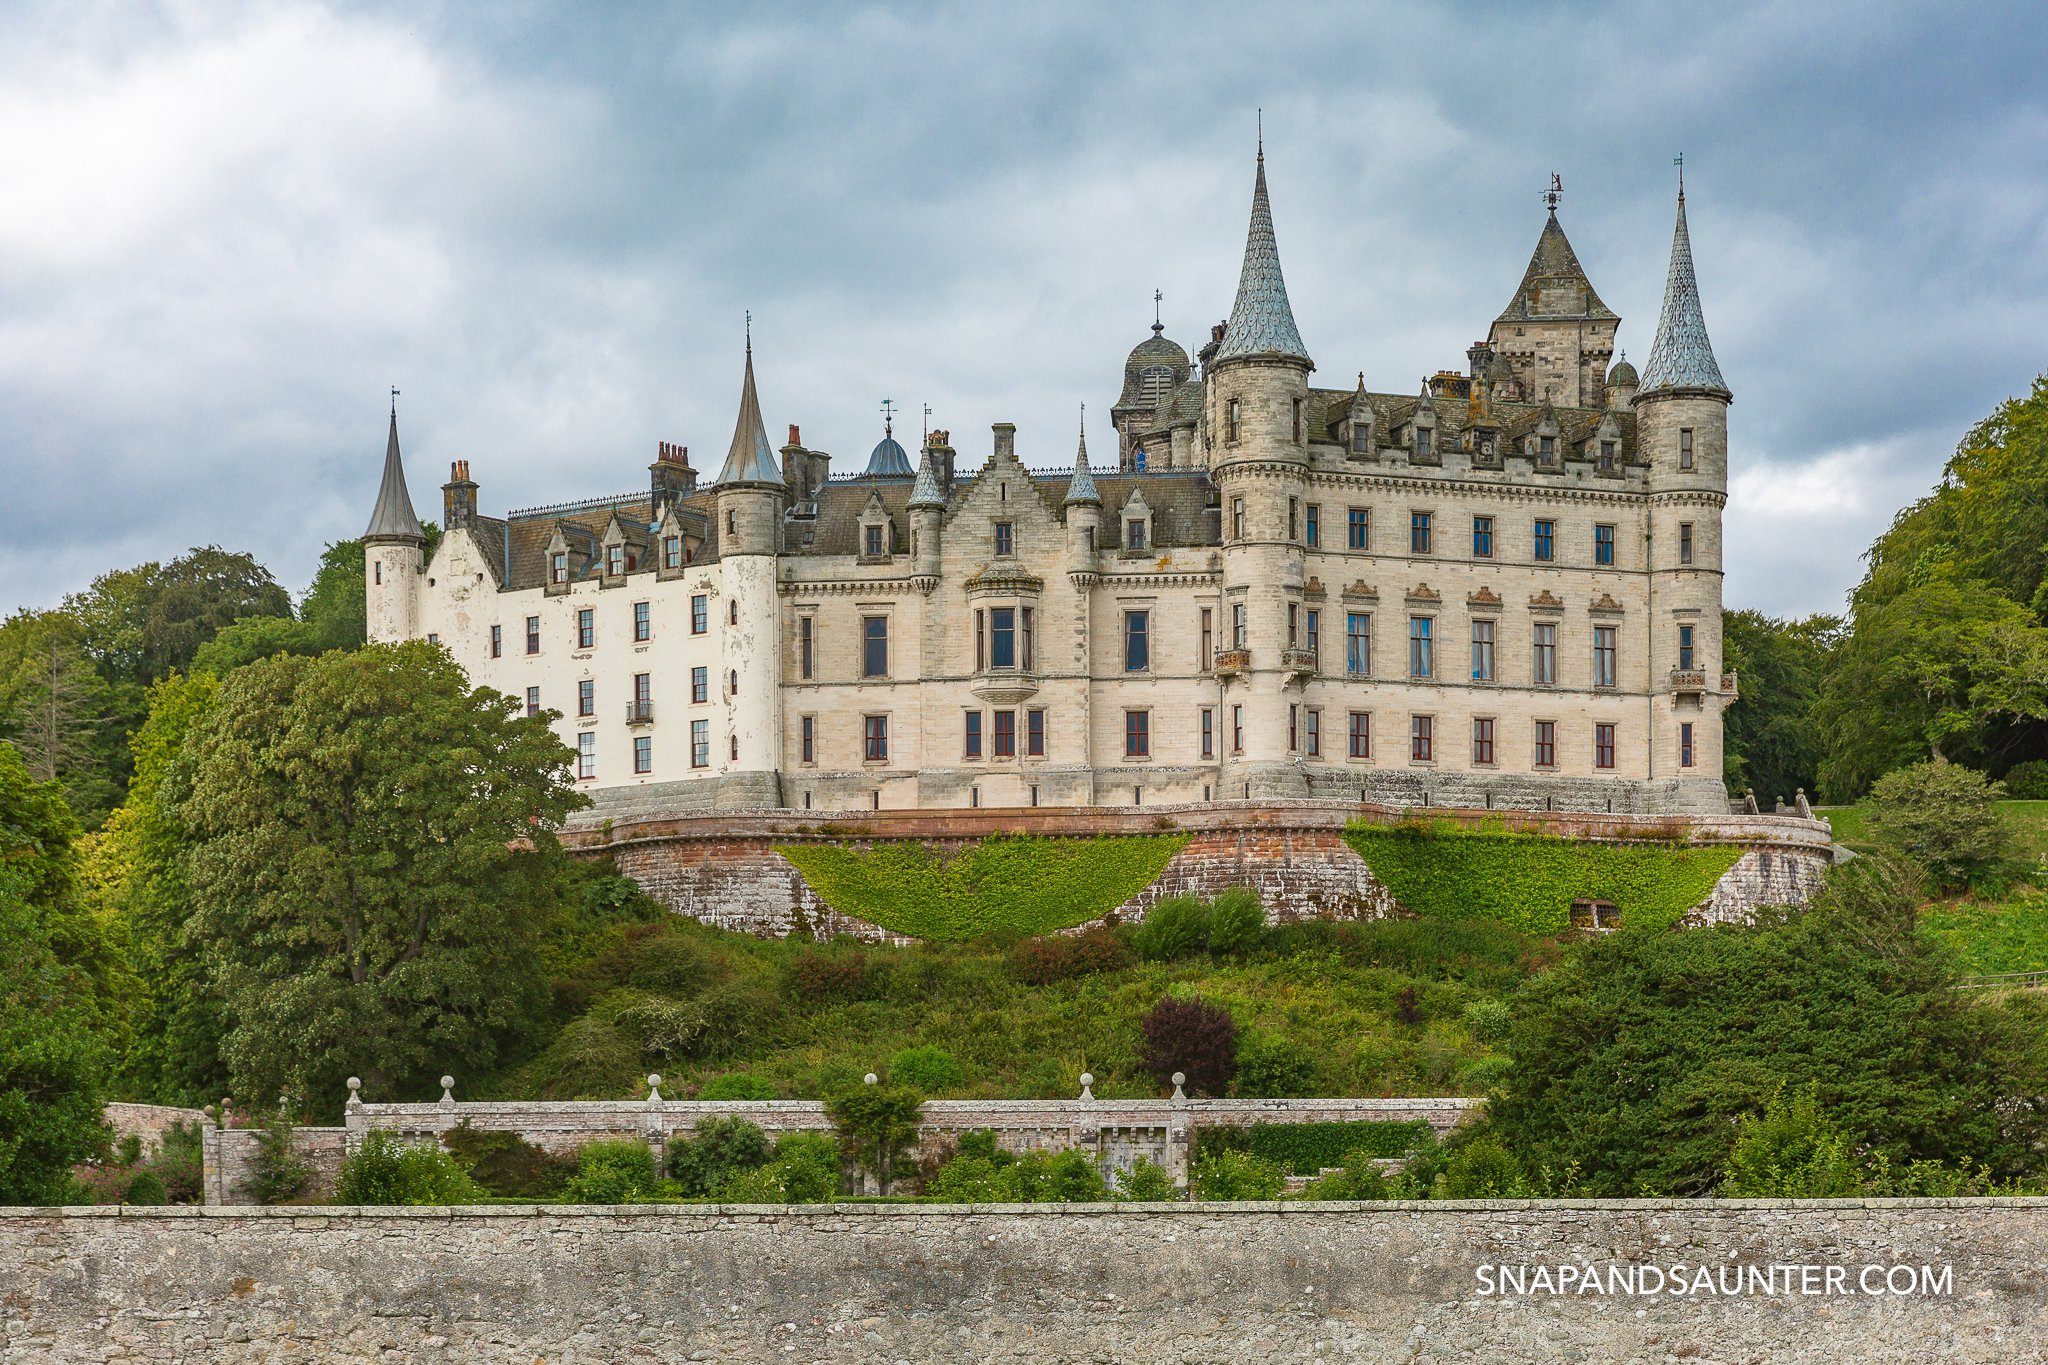 Dunrobin Castle on the North Coast 500 route